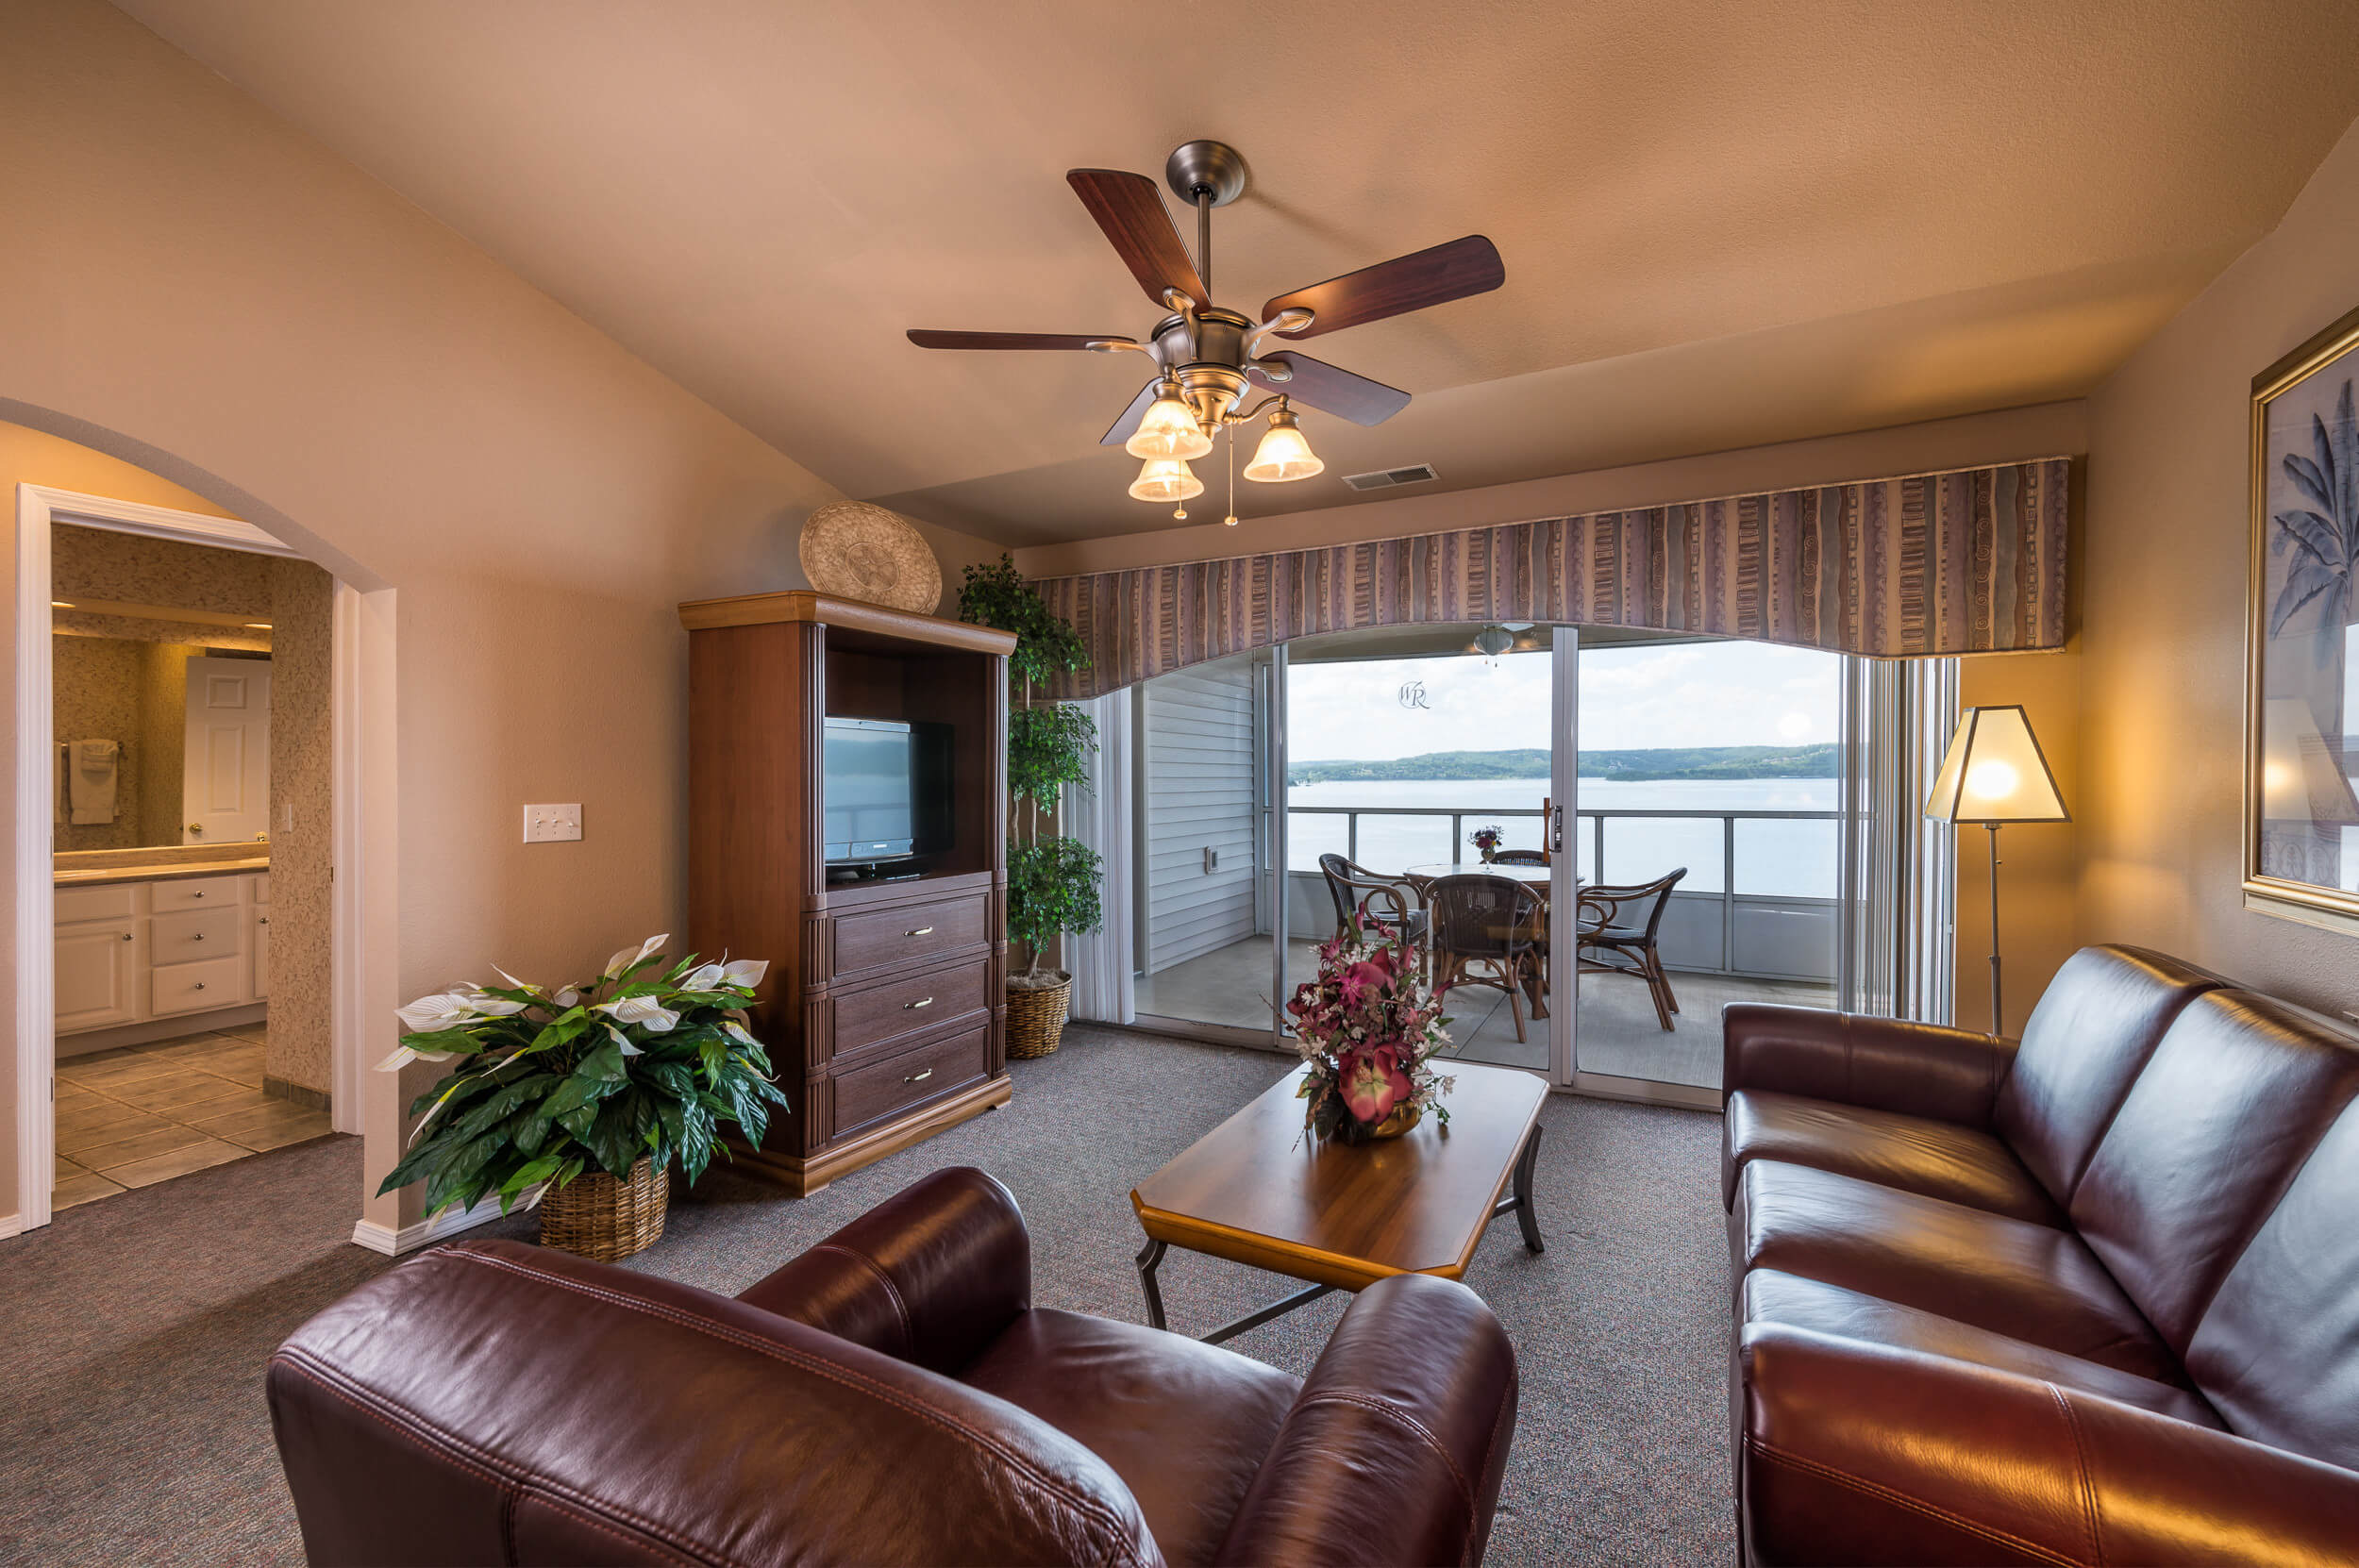 One-Bedroom Lake View Deluxe Villa at our lake resorts in Missouri | Westgate Branson Lakes Resort | Westgate Resorts in Missouri